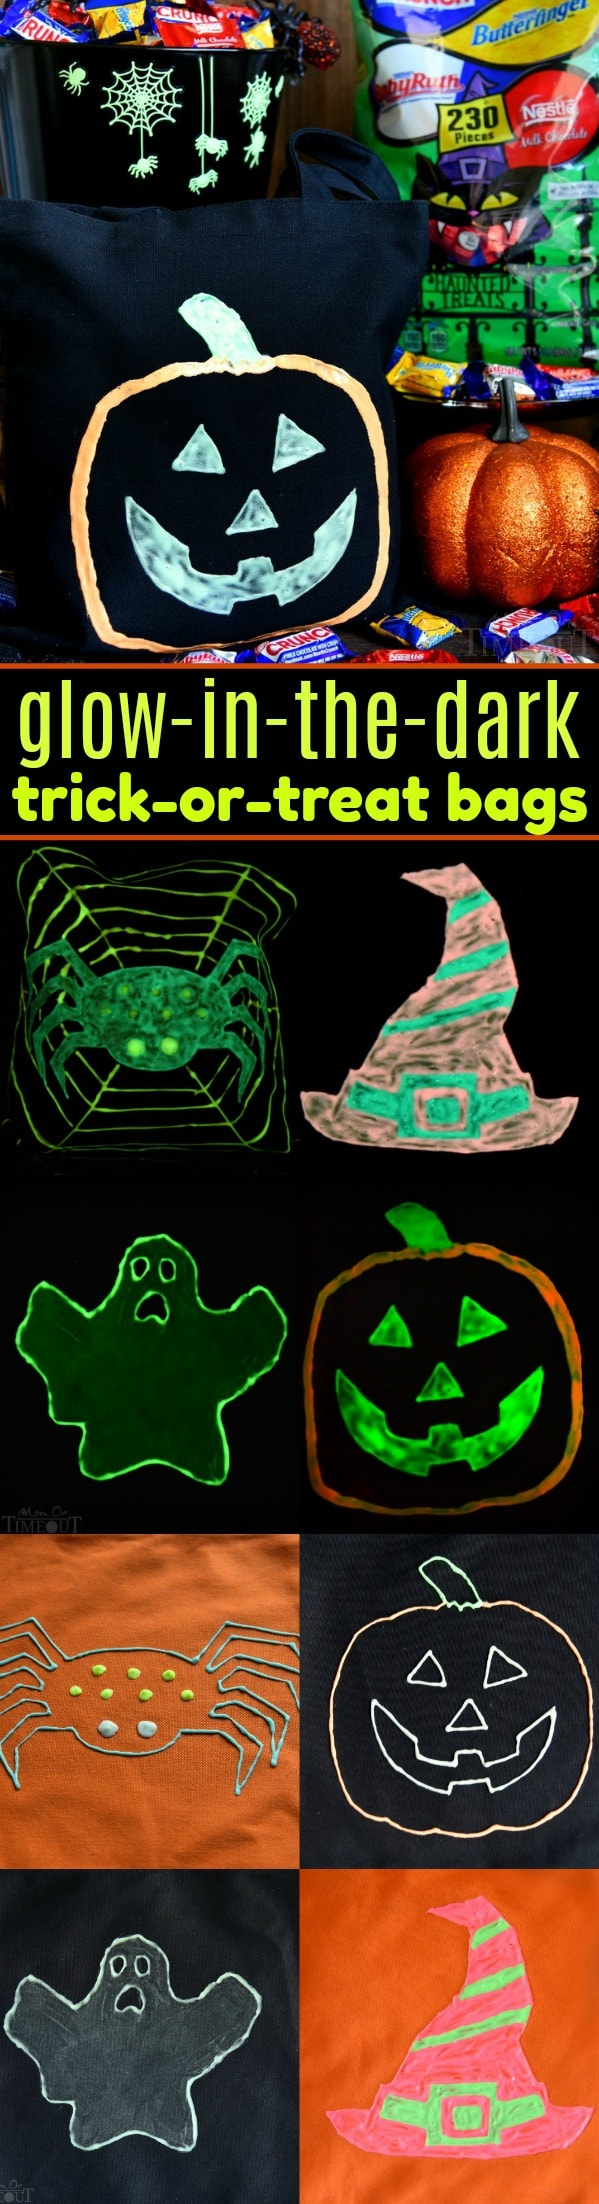 Make this Halloween the best yet with these DIY Glow-in-the-Dark Trick-or-Treat Bags featuring your favorite Nestlé candies! Fun, easy, and spook-tacular! // Mom On Timeout #halloween #trickortreat #craft #ad